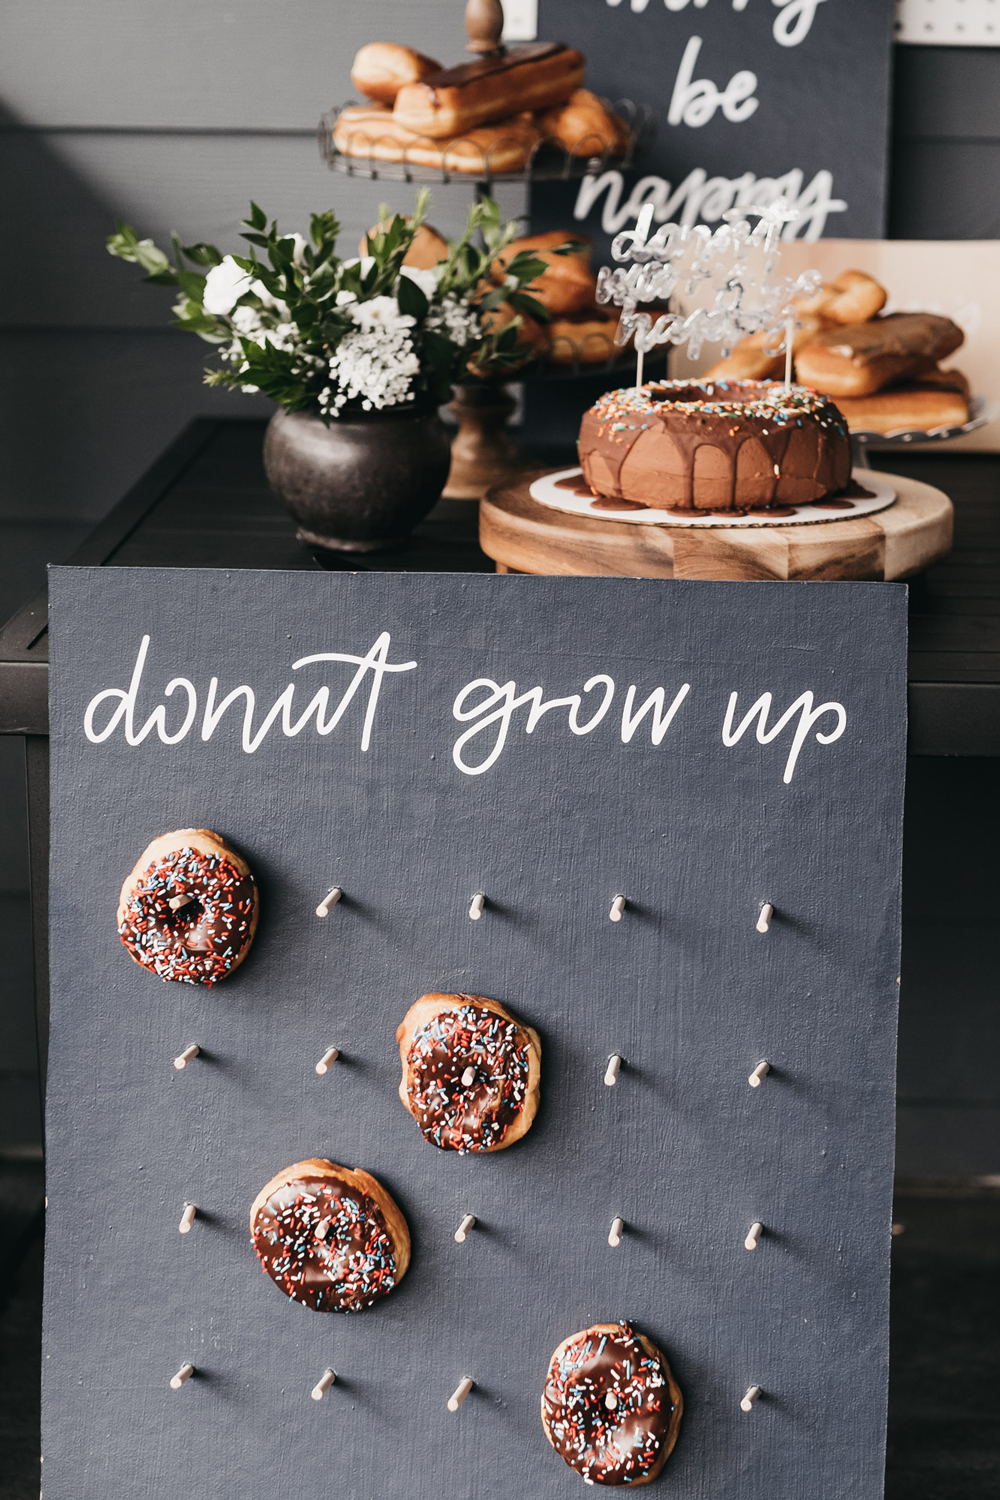 Donut party, doughnut party, first birthday party ideas, doughnut jokes, donut phrases, donut sign, doughnut sign, doughnut birthday ideas, donut birthday ideas, first birthday ideas, boys birthday party, 100 layer cake party, boys first birthday ideas, doughnut pegboard, donut pegboard, donut display wall, doughnut display wall, chic boys party, painted playhouse, white playhouse, playhouse makeover, outdoor play house makeover